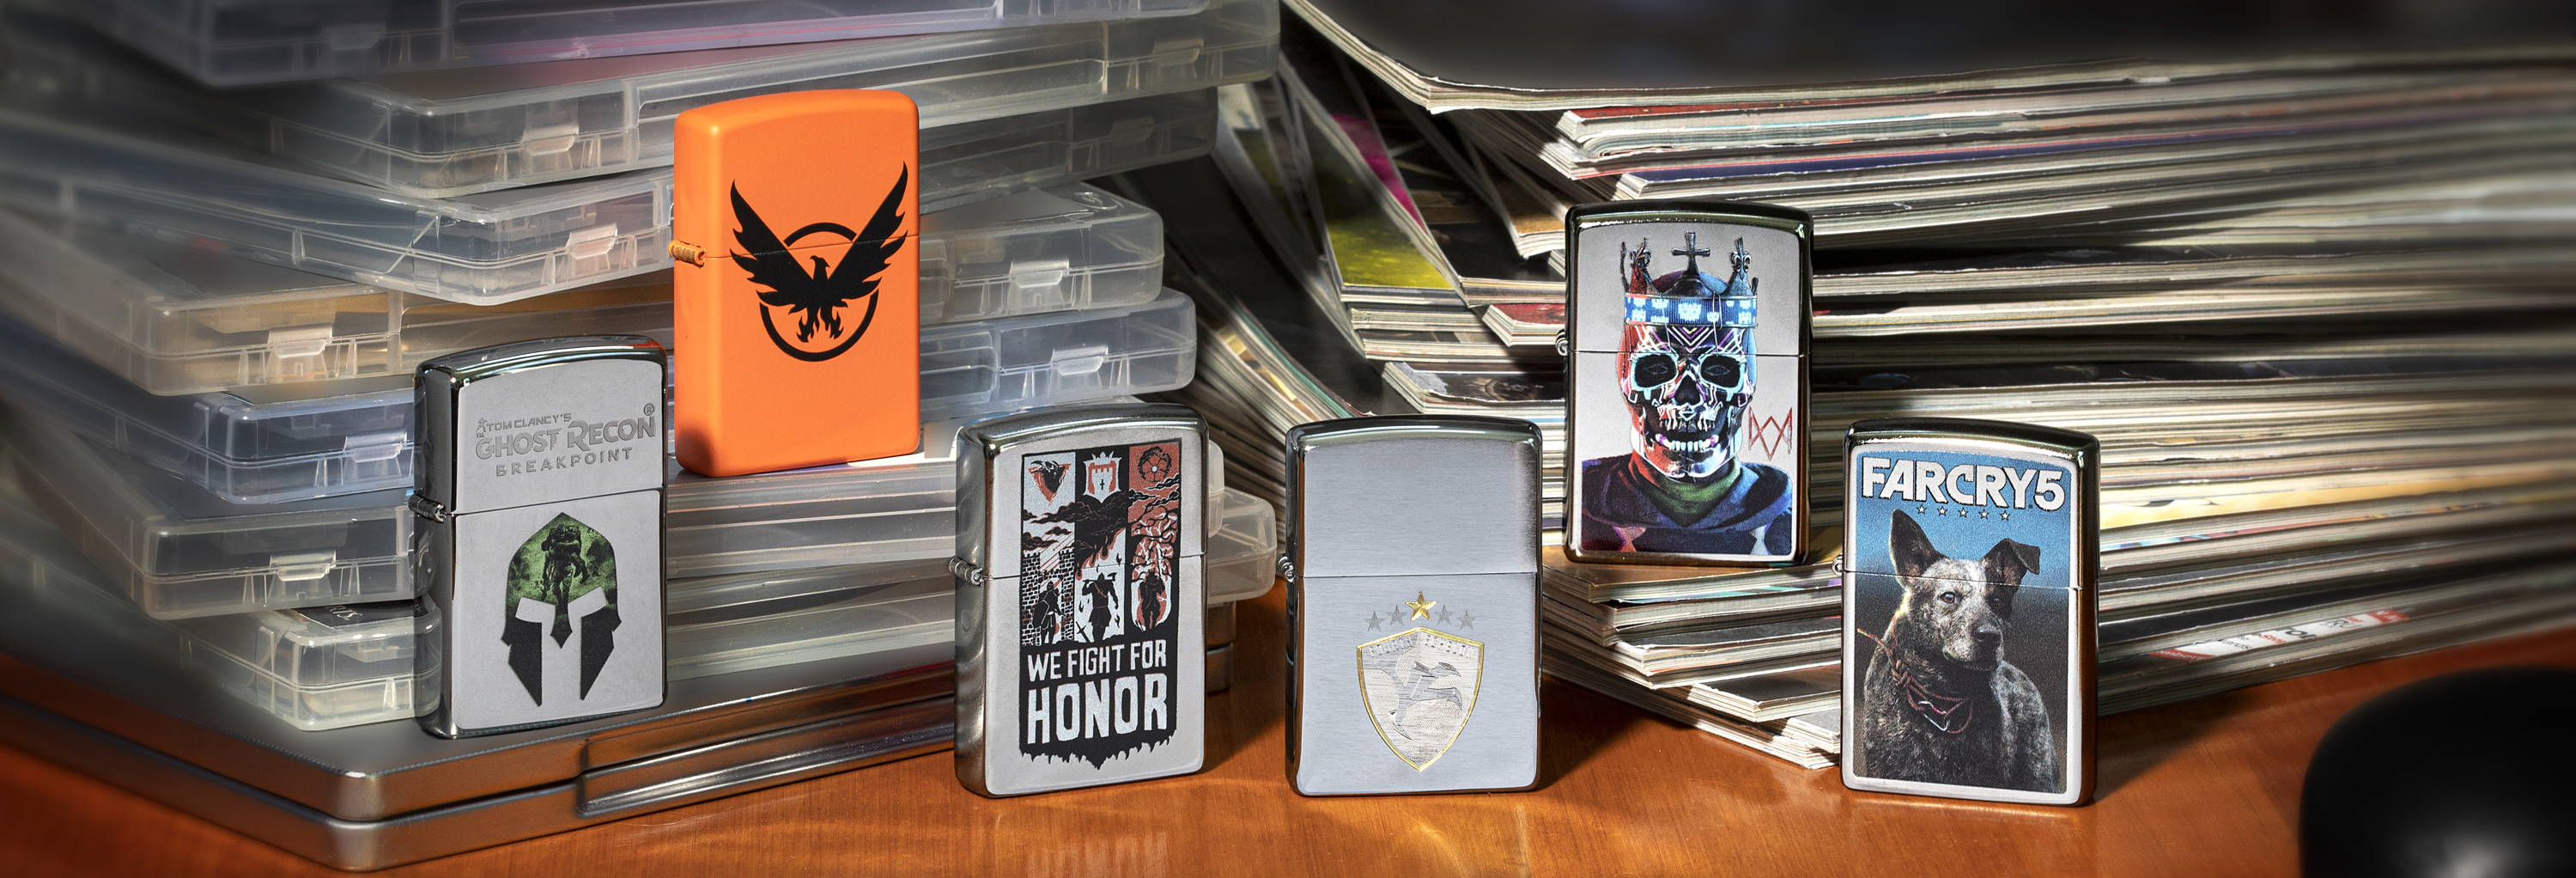 All Ubisoft Web Debut lighters standing staggered on a desk with magazines and game cases